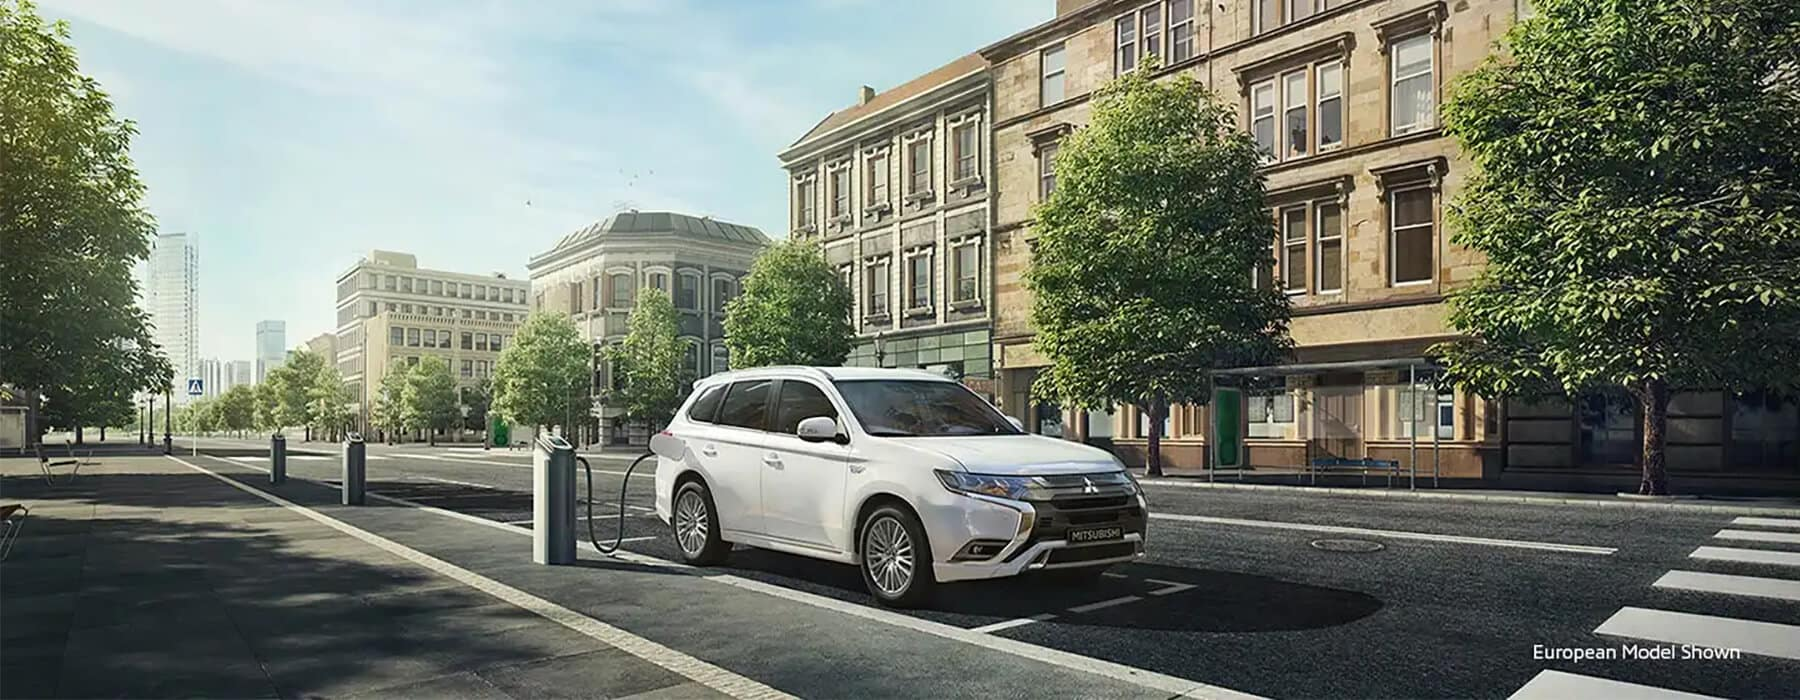 2020 Family Green Car of the Year Mitsubishi Outlander PHEV Slider